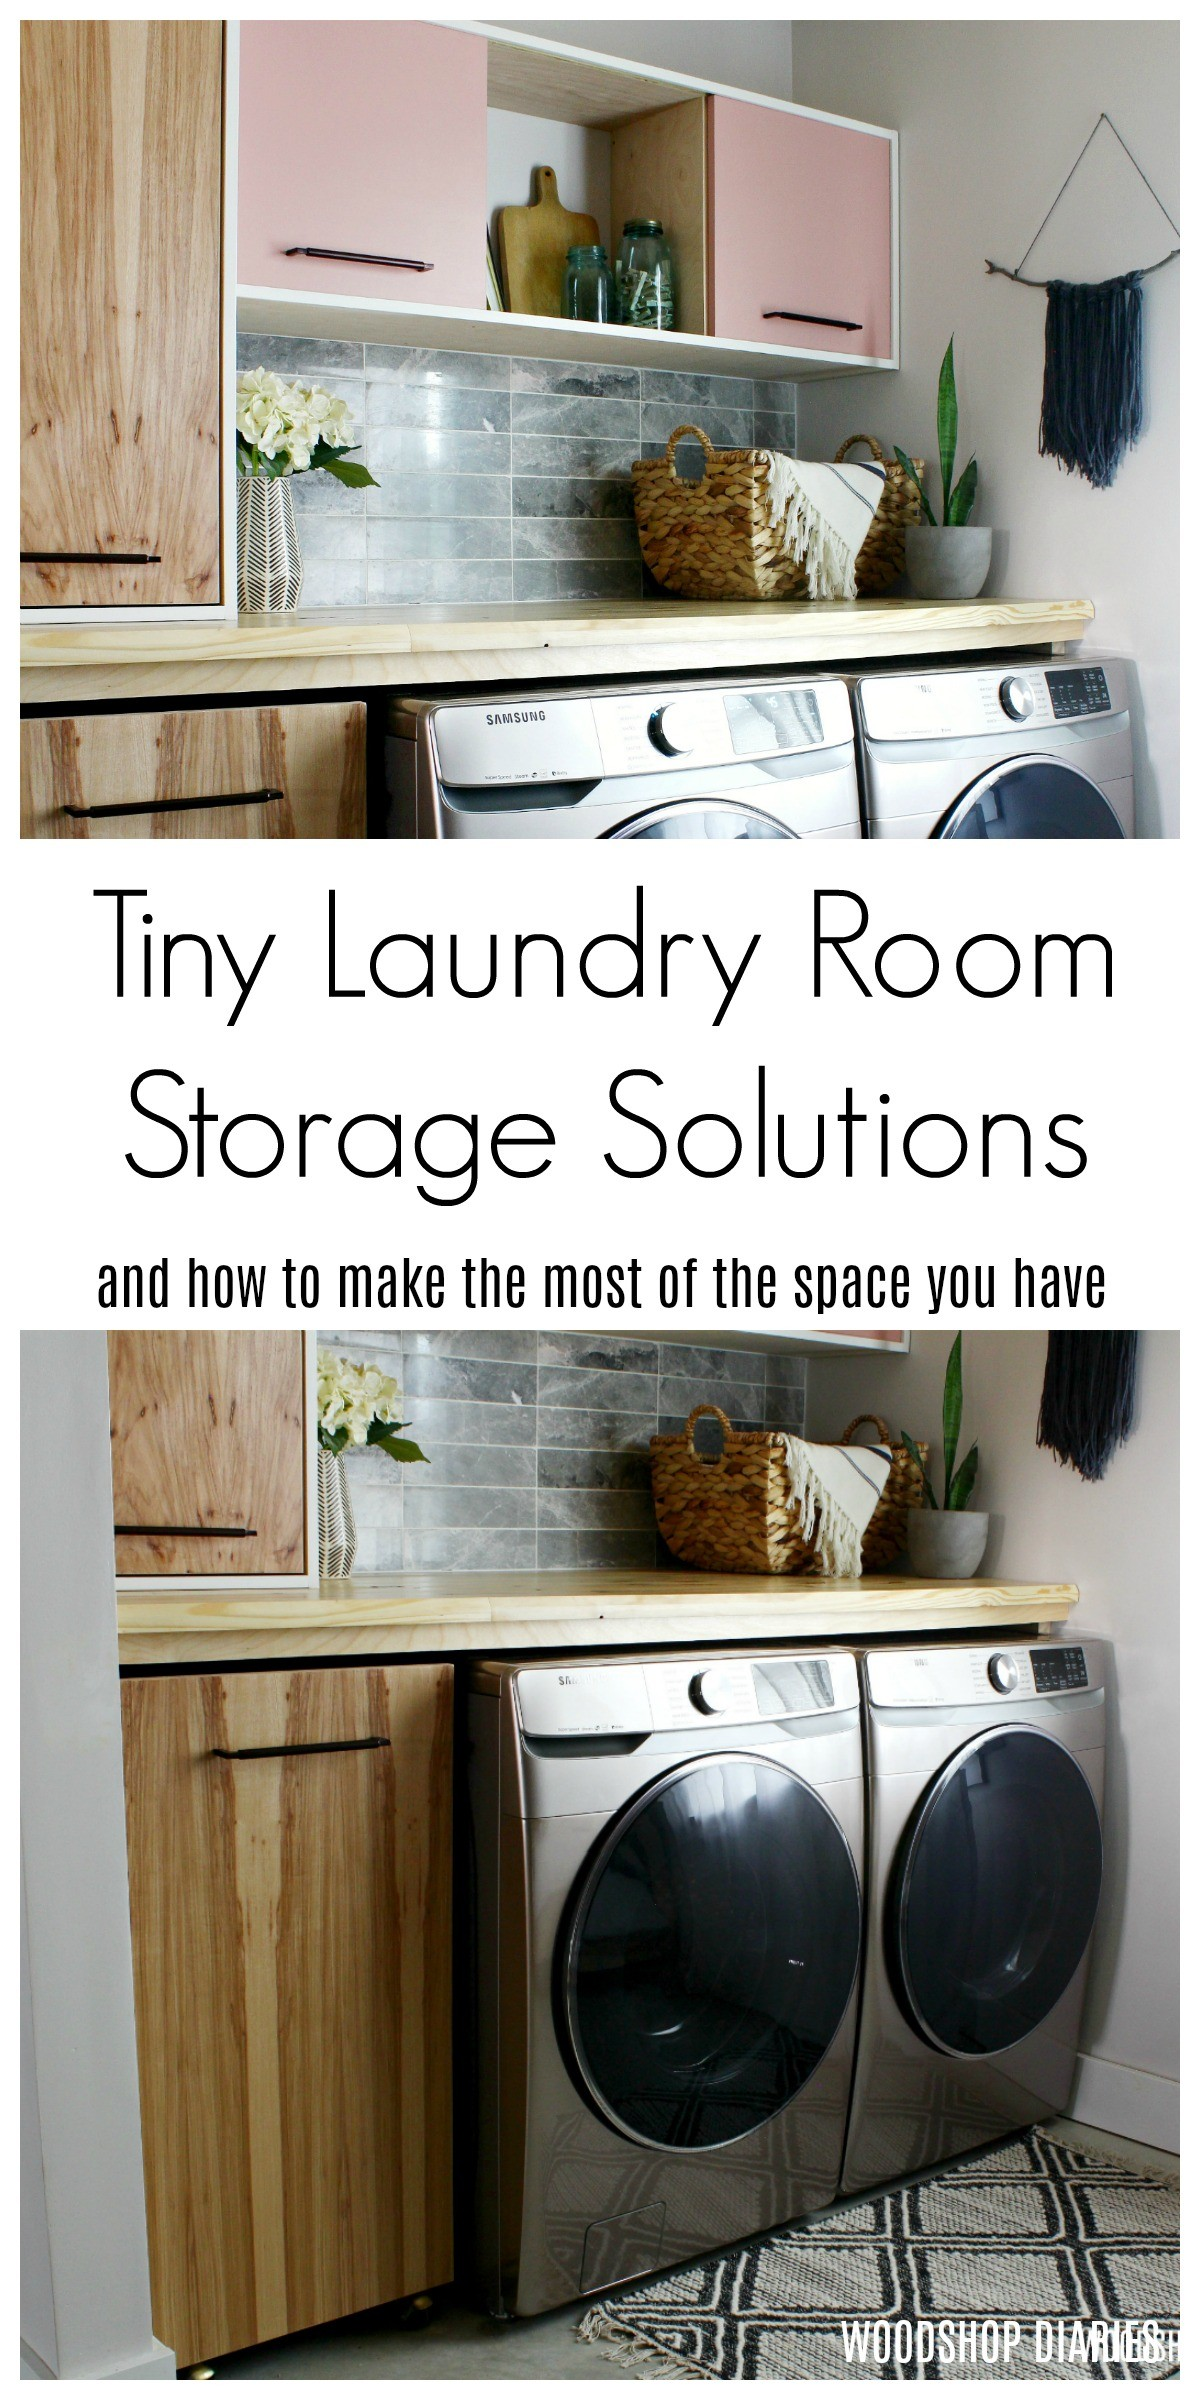 How to make the most of your small laundry room and creative small laundry room storage solutions!